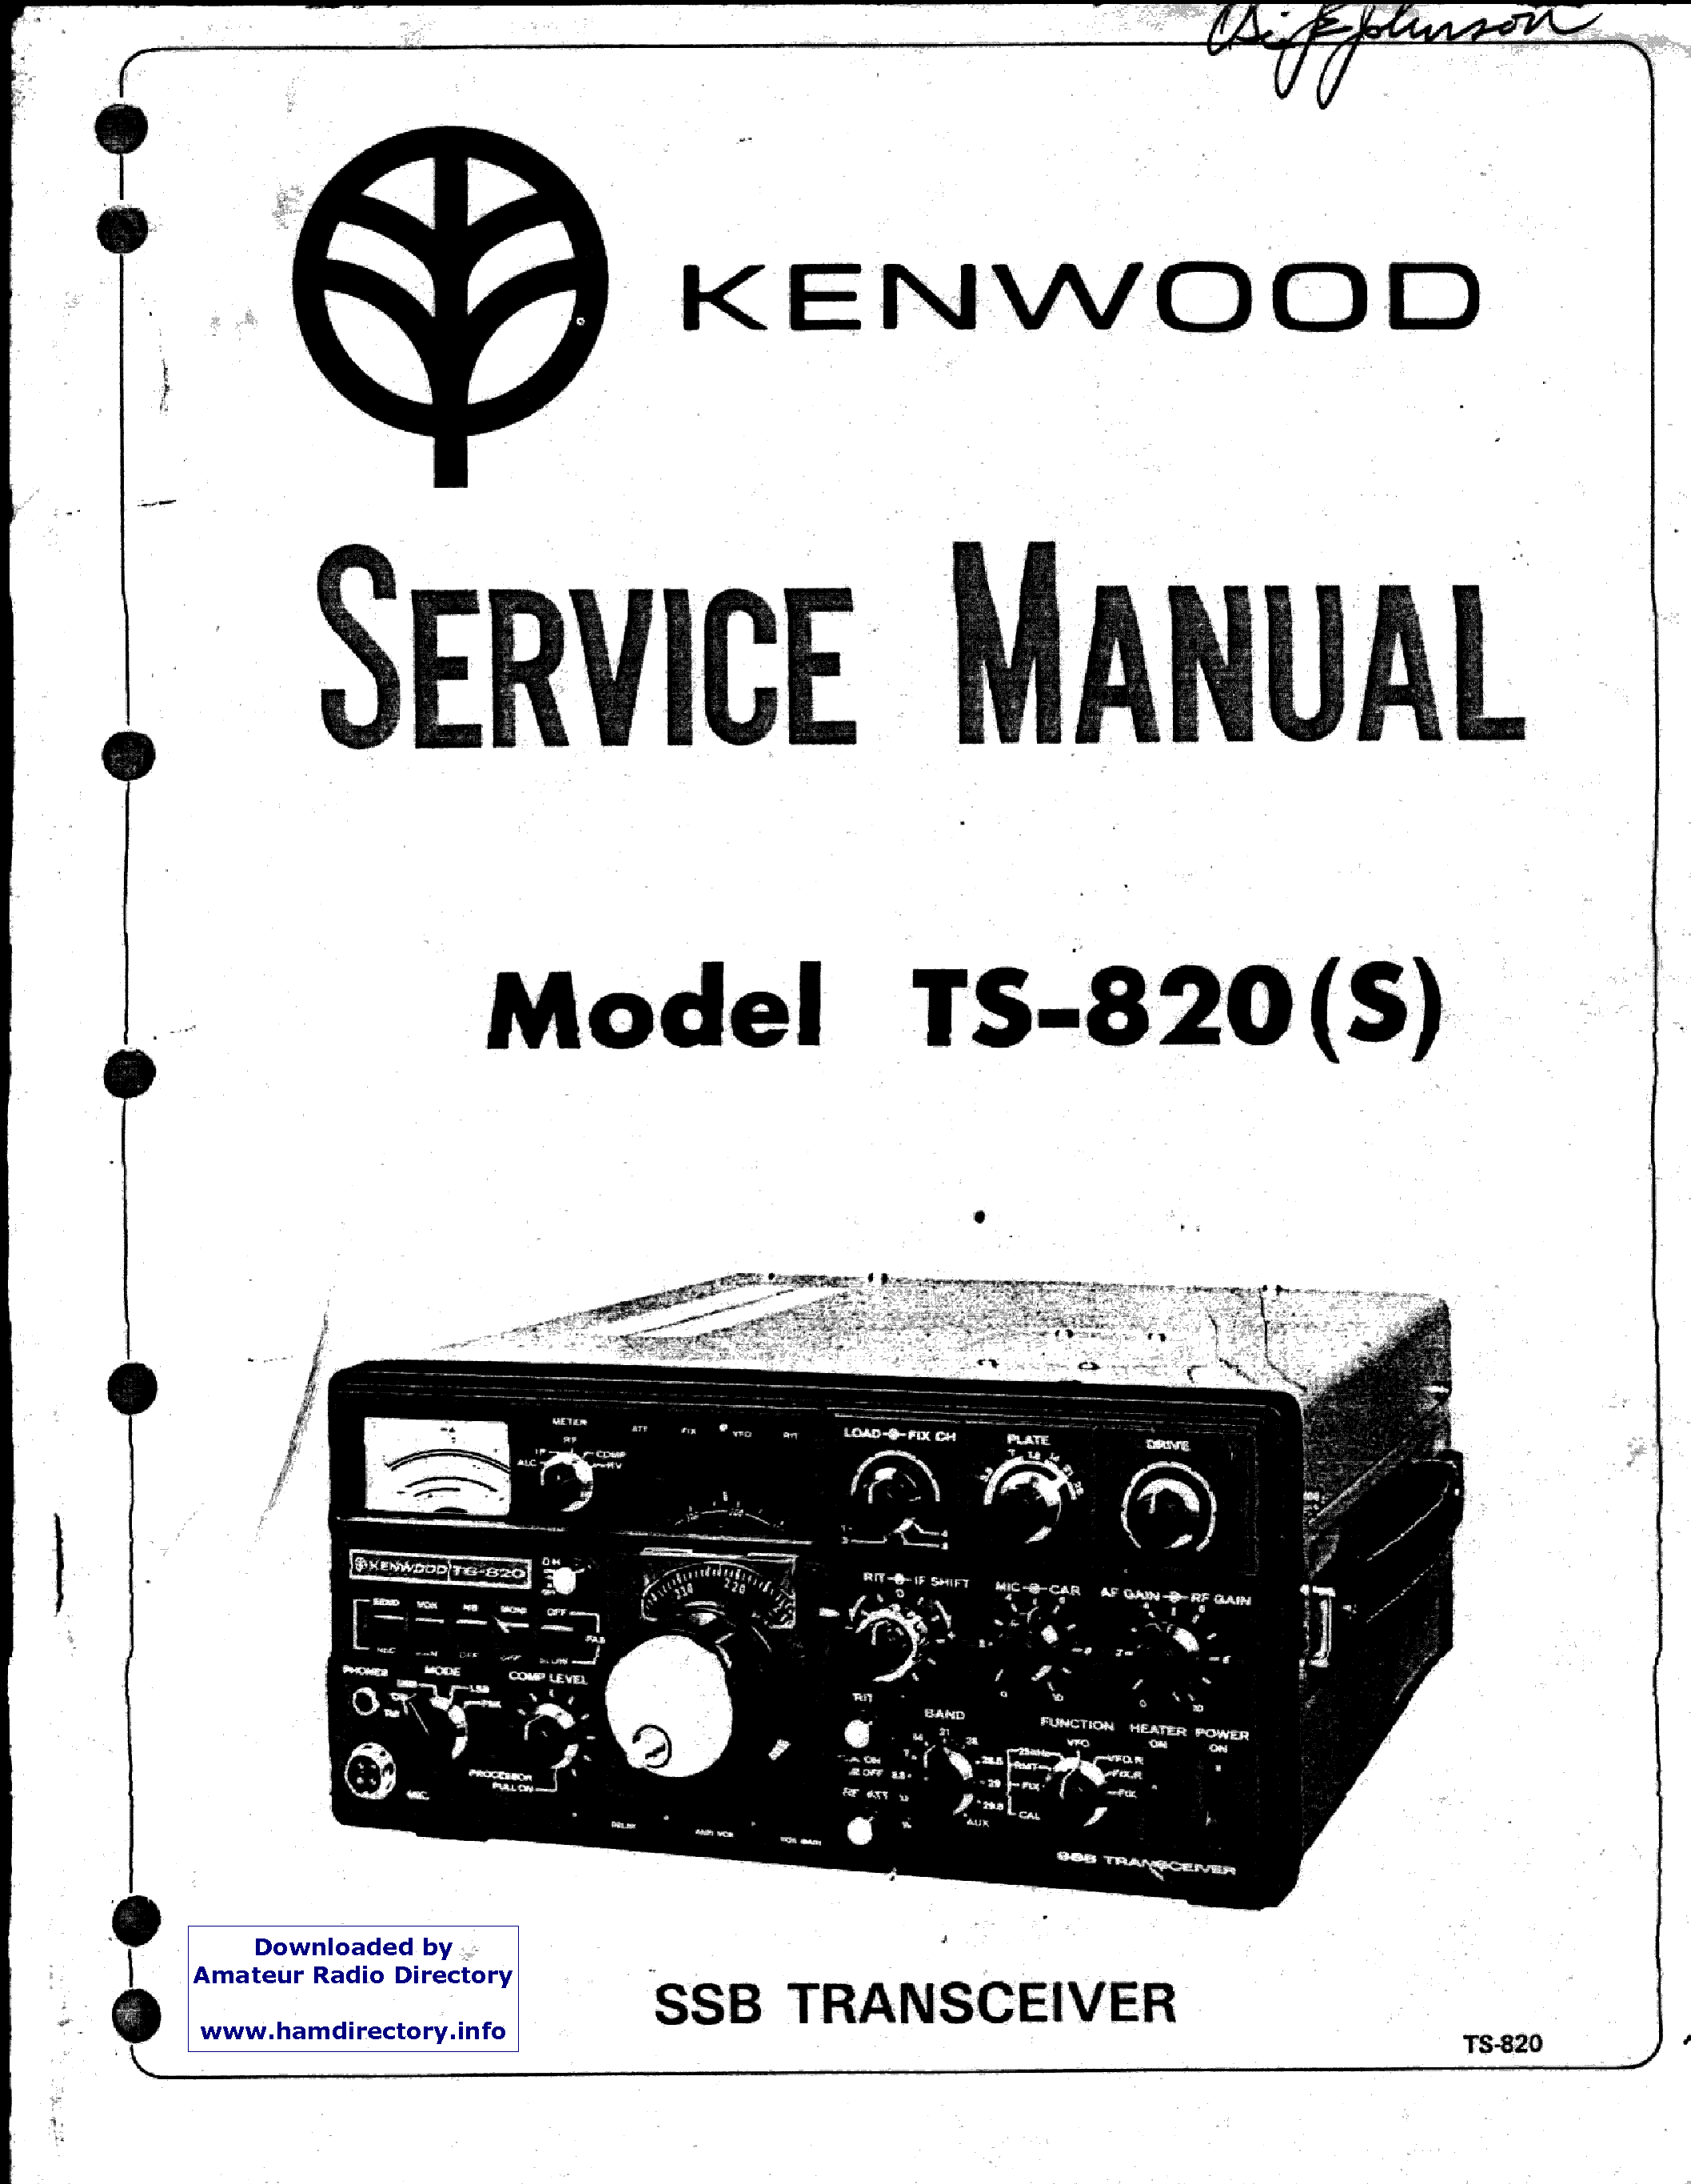 KENWOOD TS820S service manual (1st page)